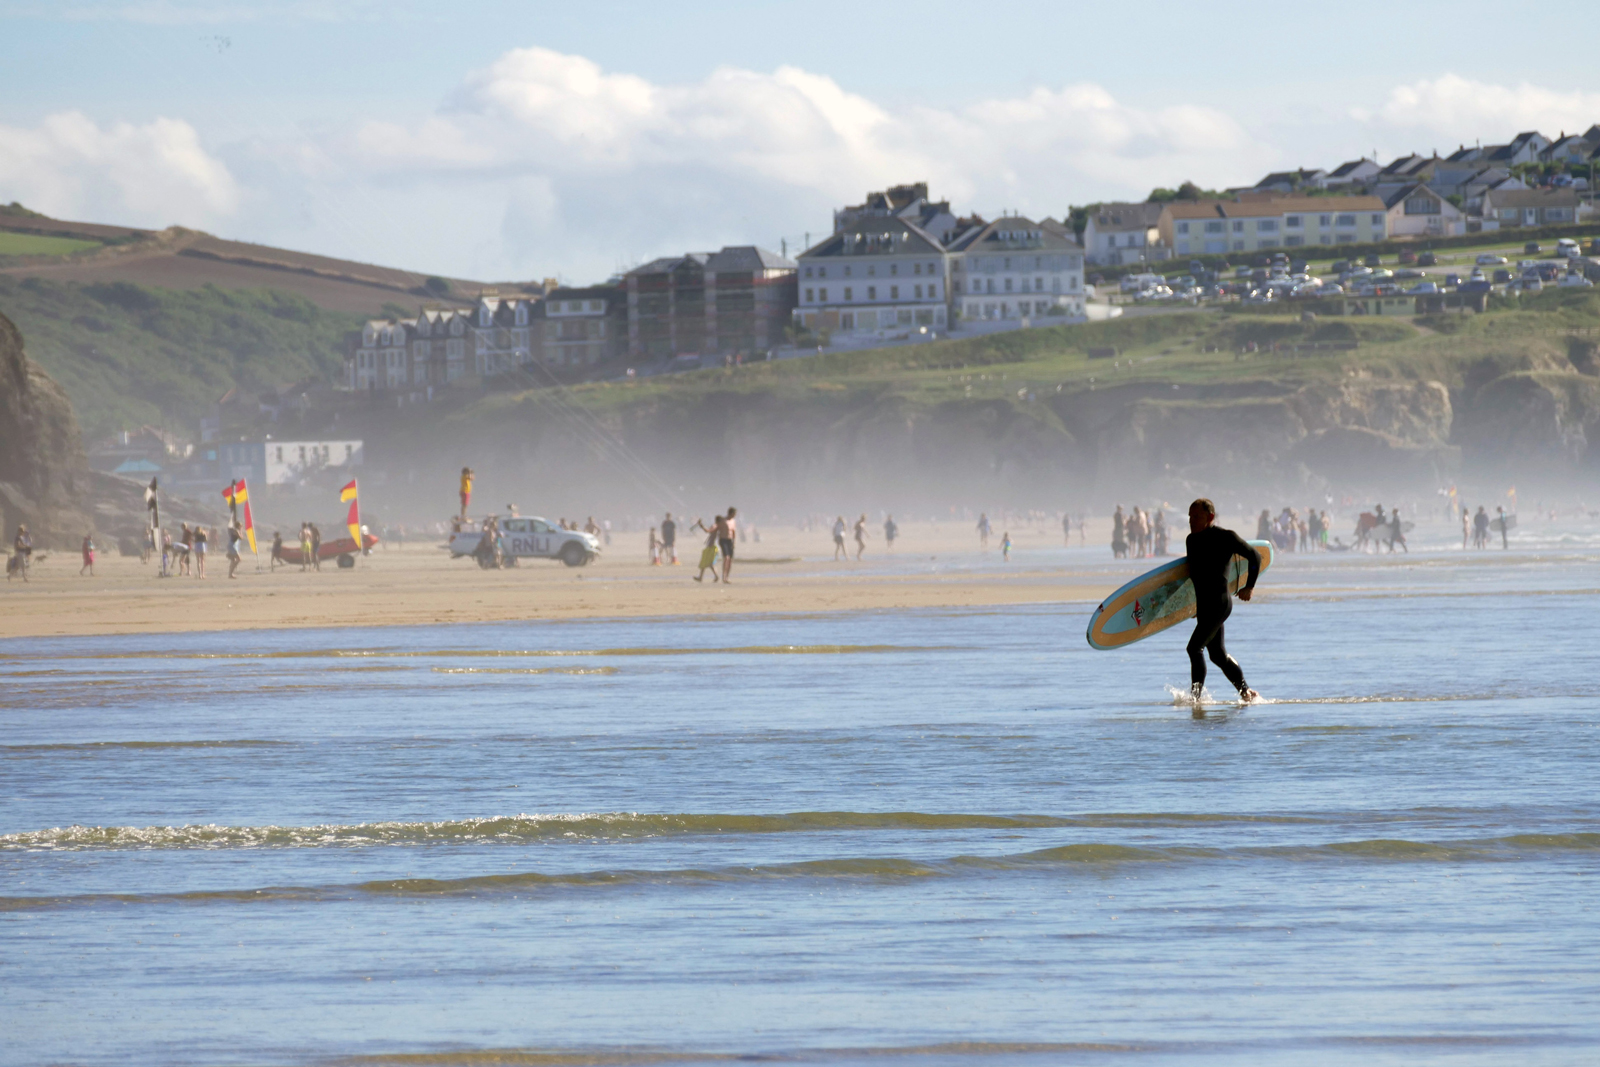 A person surfing on the sea in-front of a busy sandy beach in Cornwall